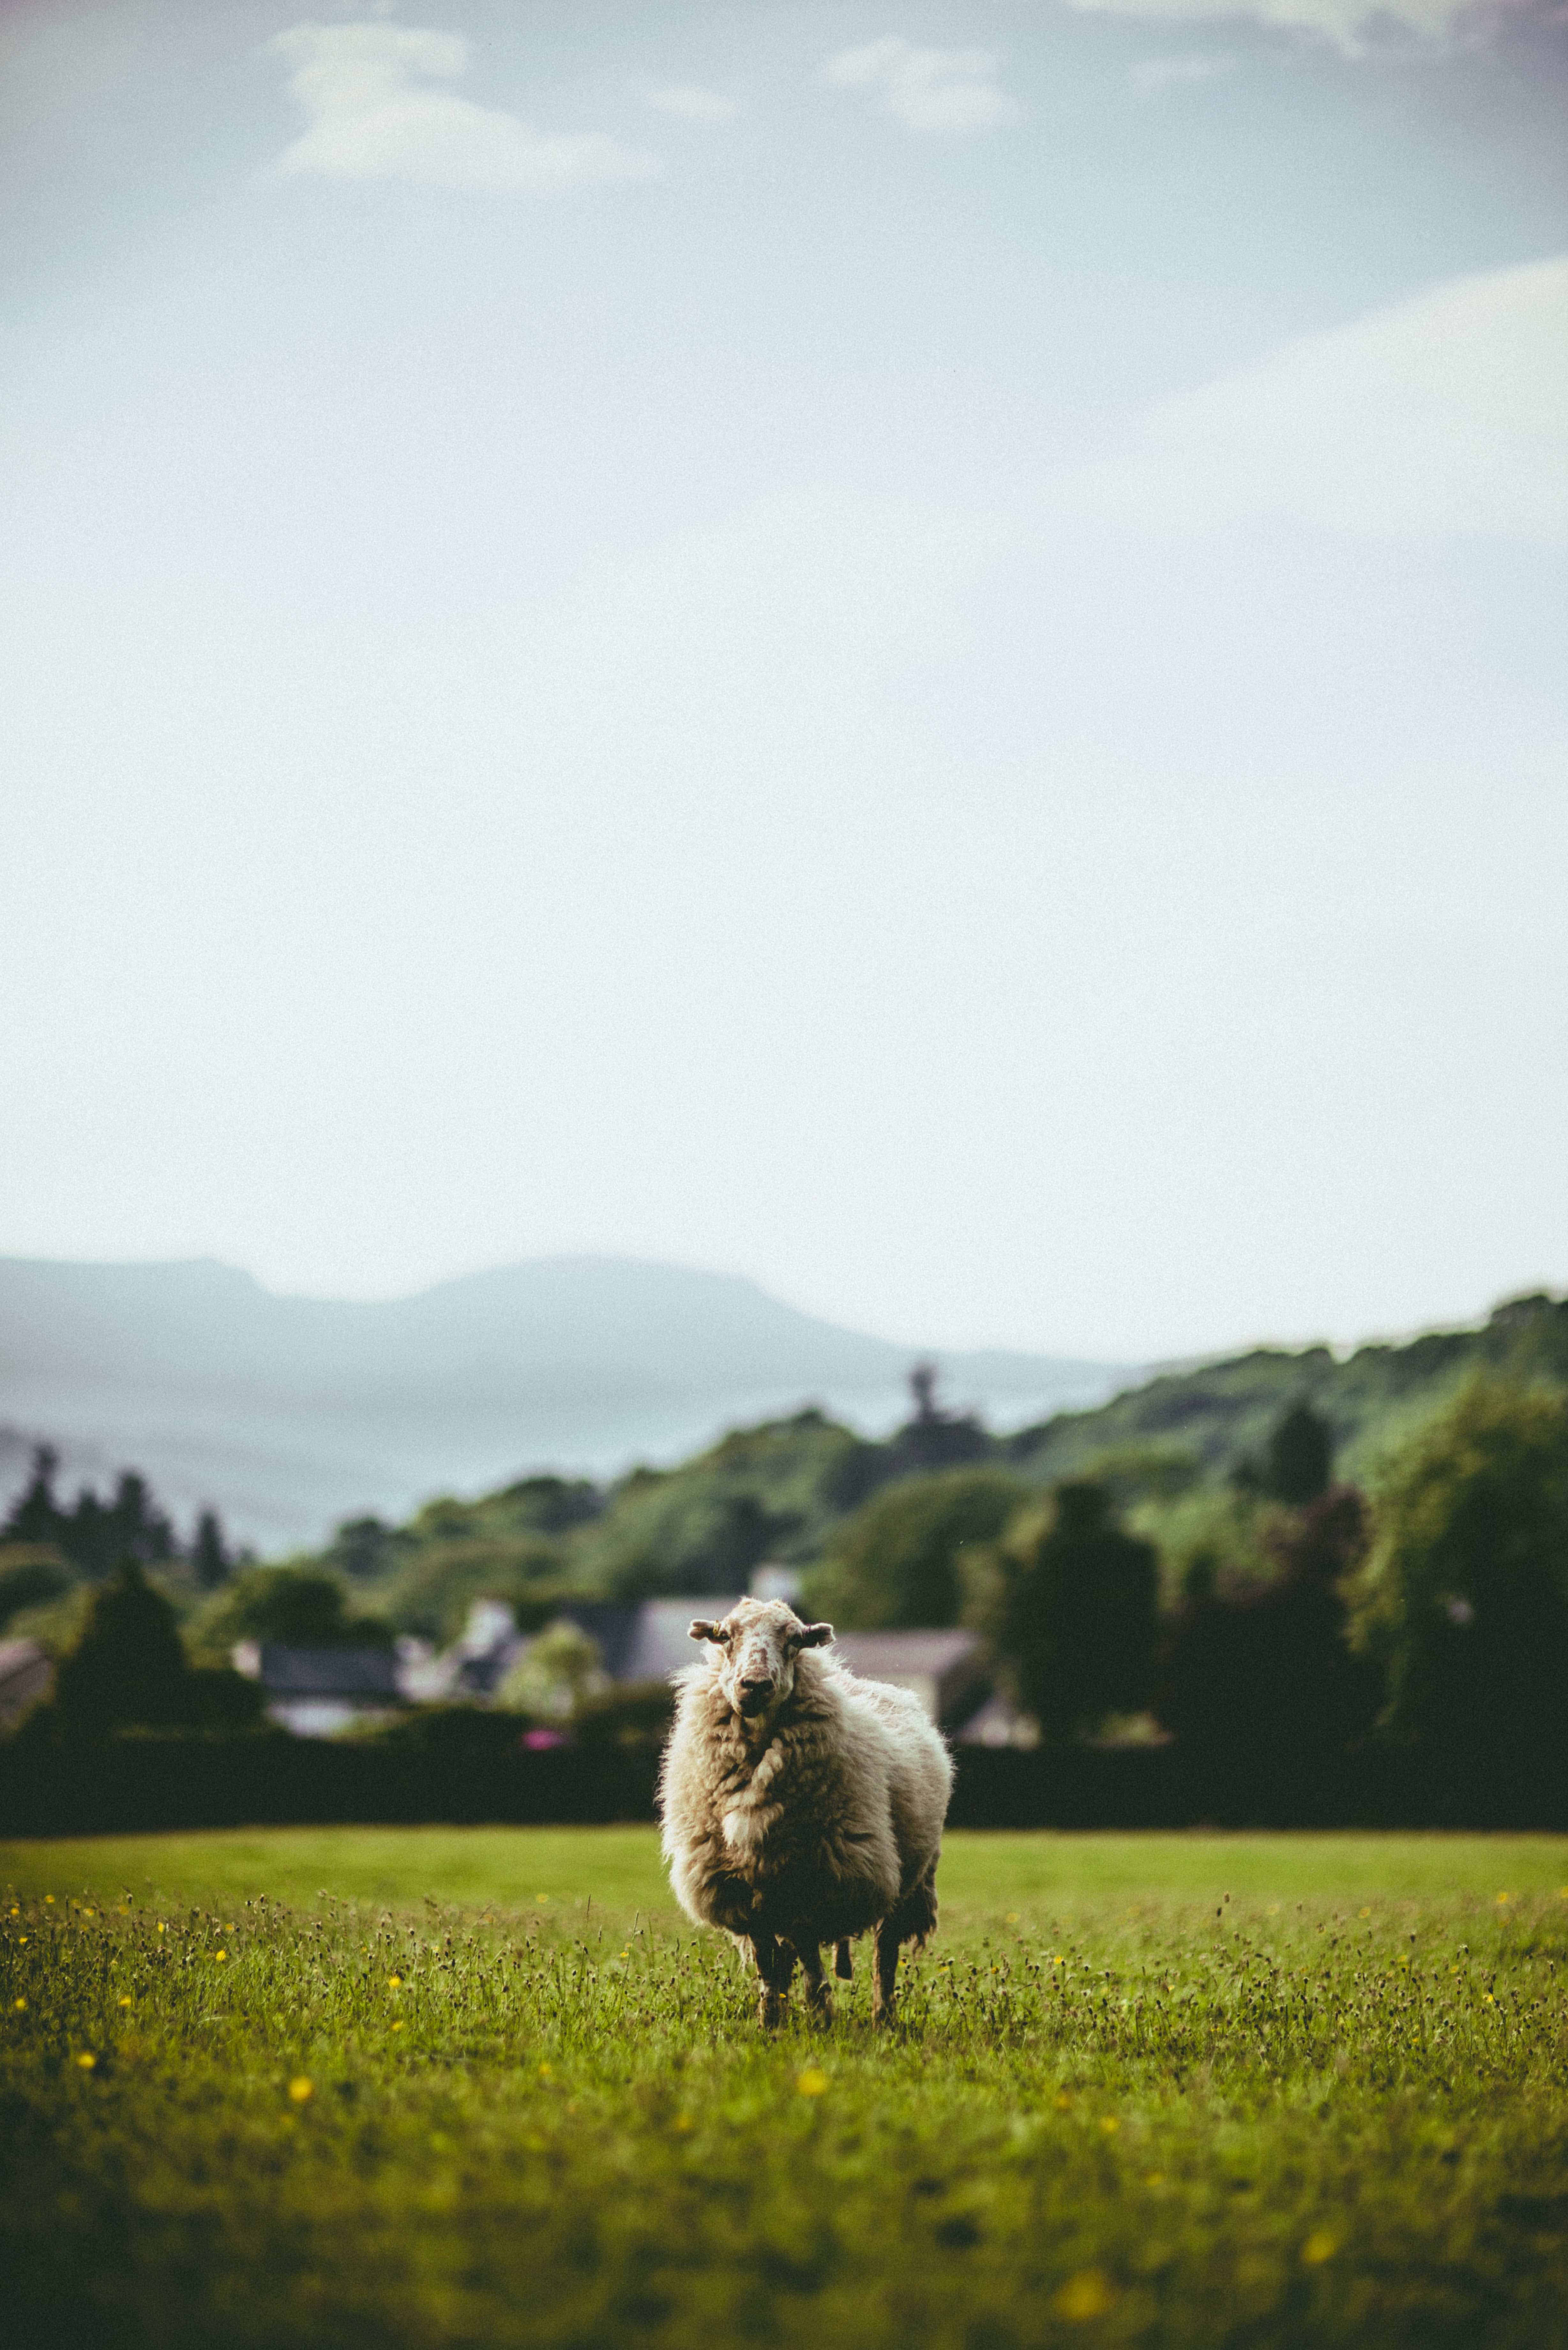 selective focus photography of white sheep on grass field